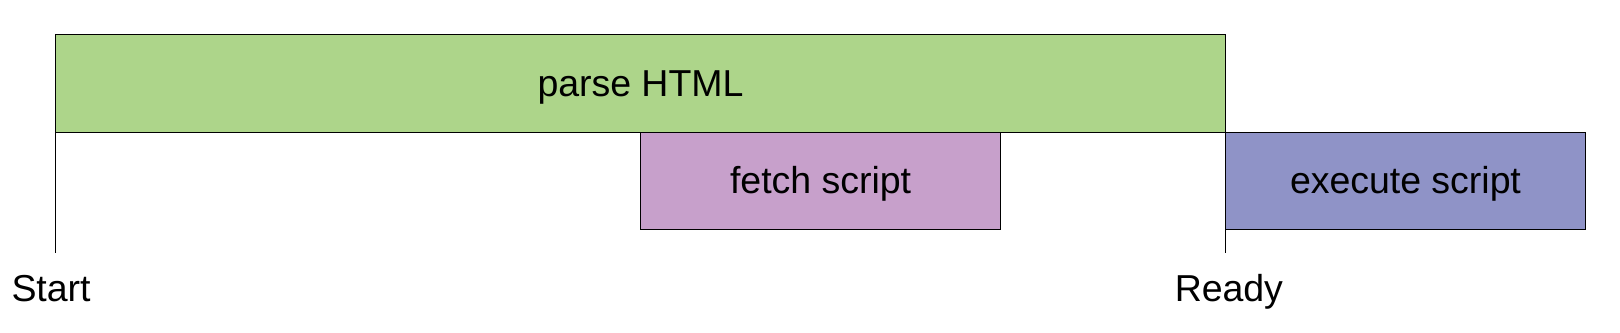 html-script-async-defer